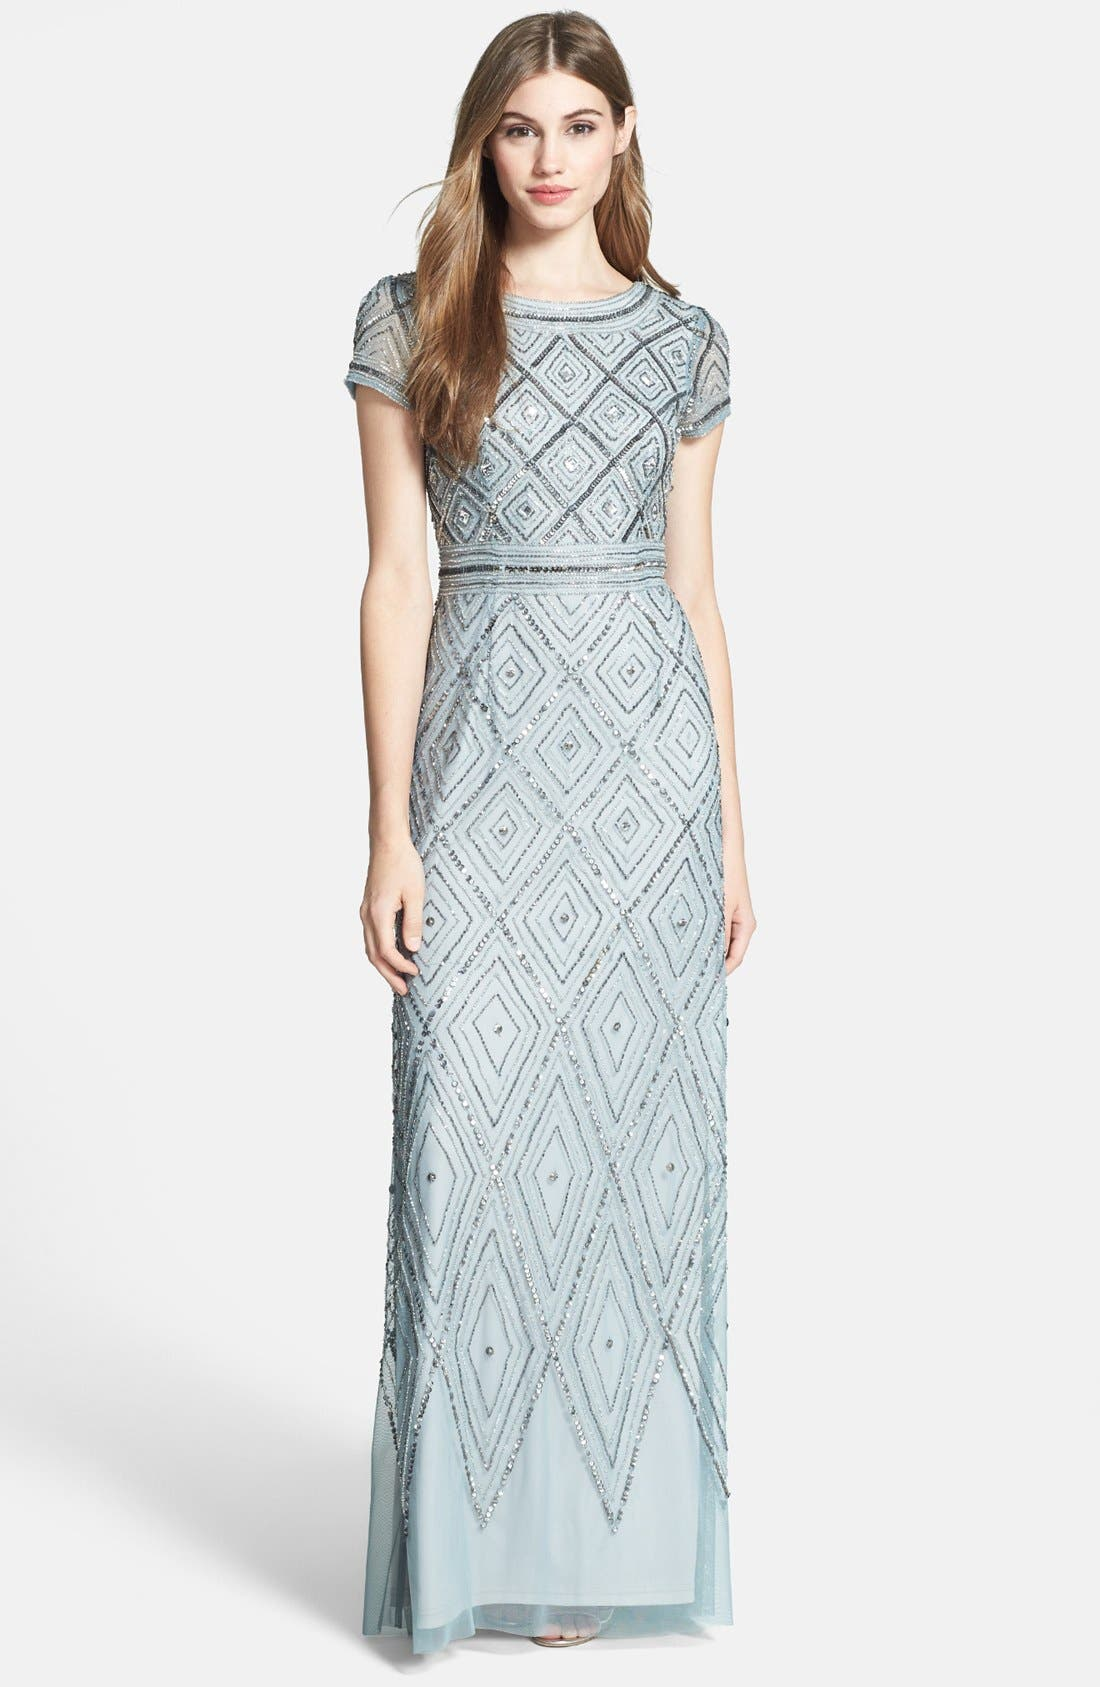 Find great deals on eBay for beaded mesh dress. Shop with confidence.